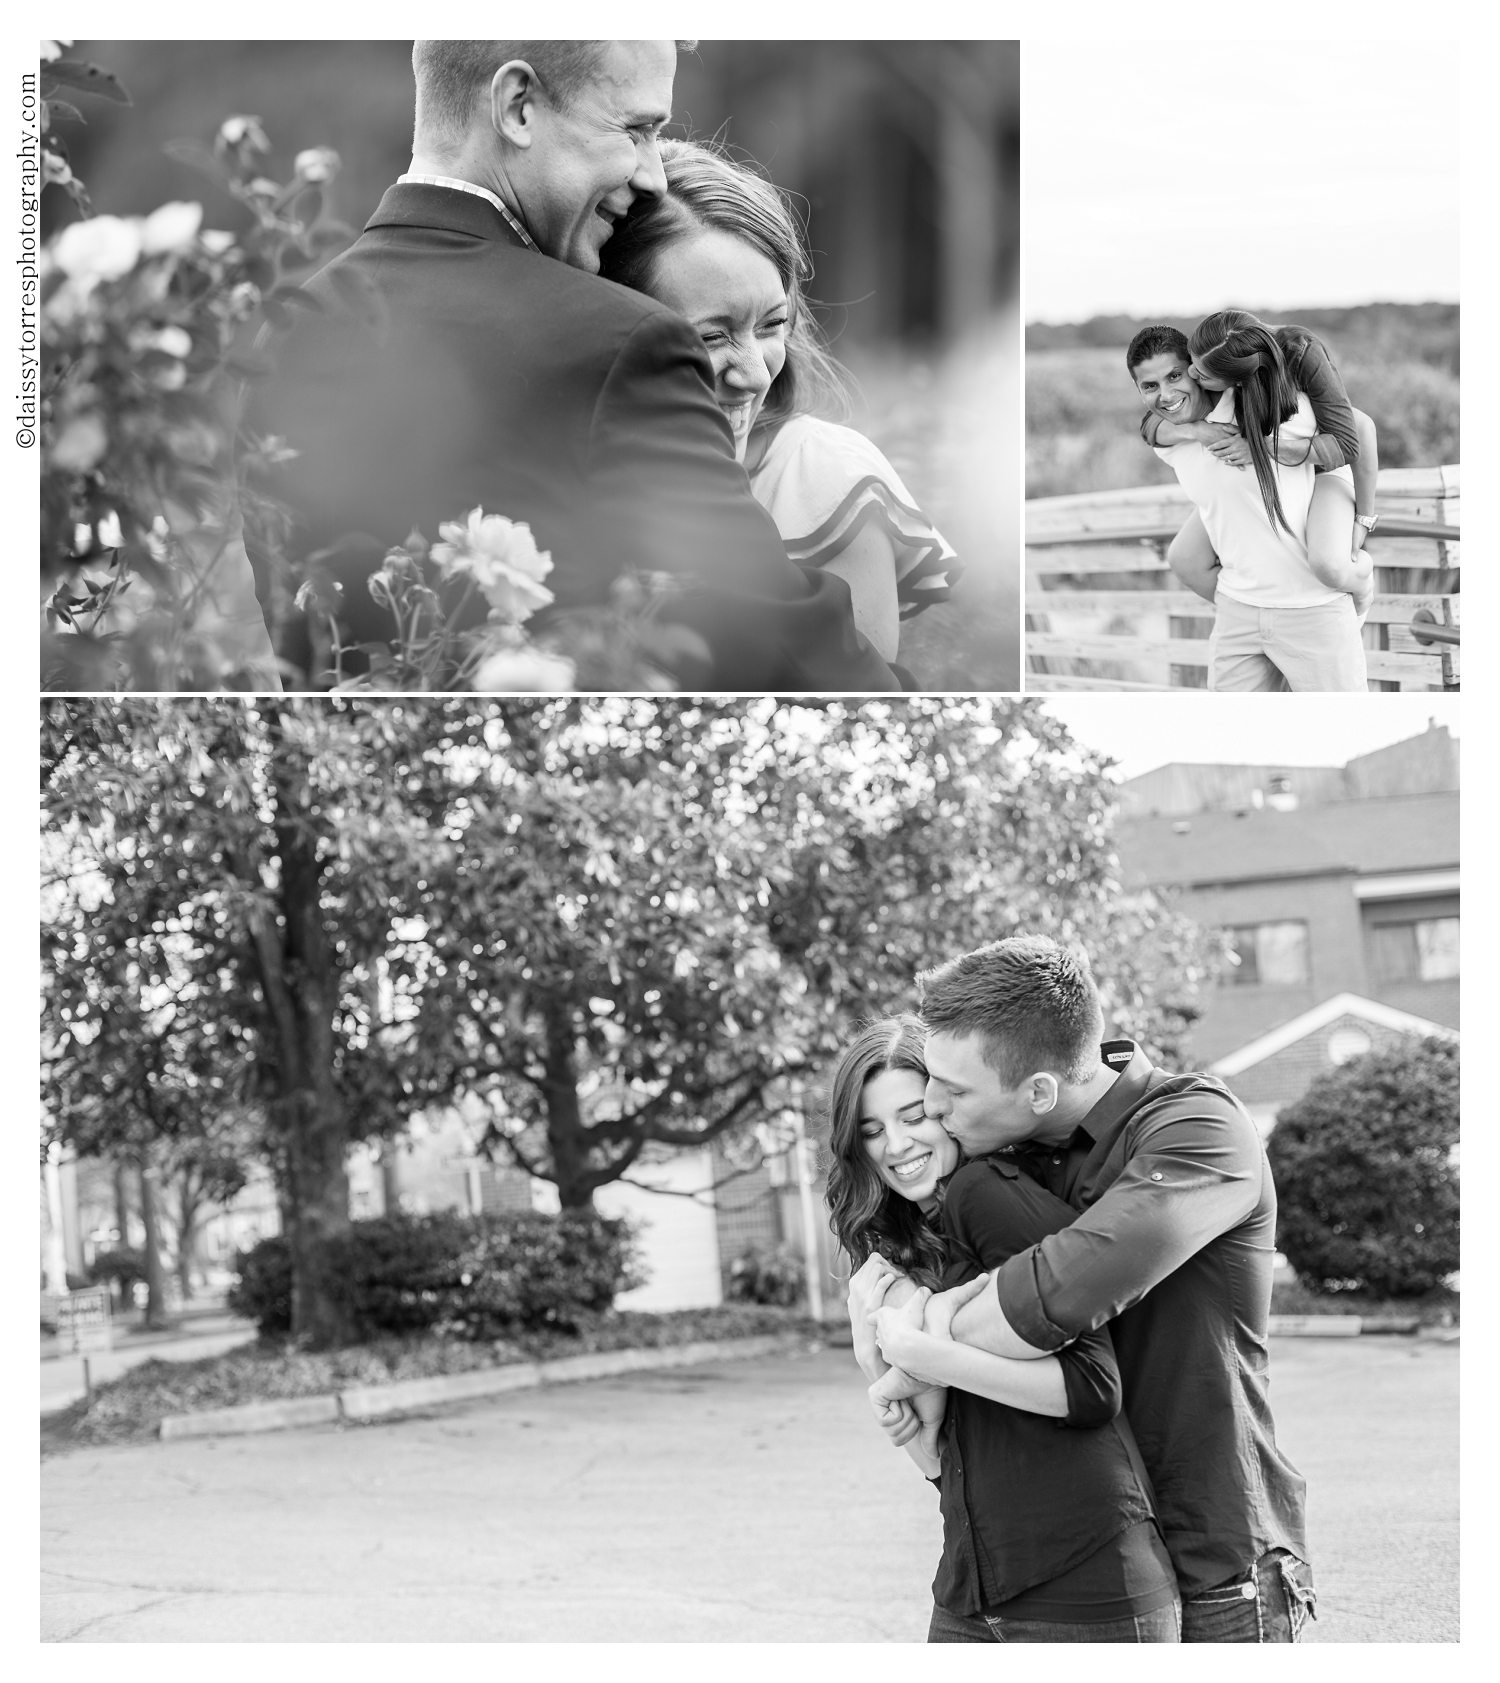 7 sure ways to make your engagement photos suck 6